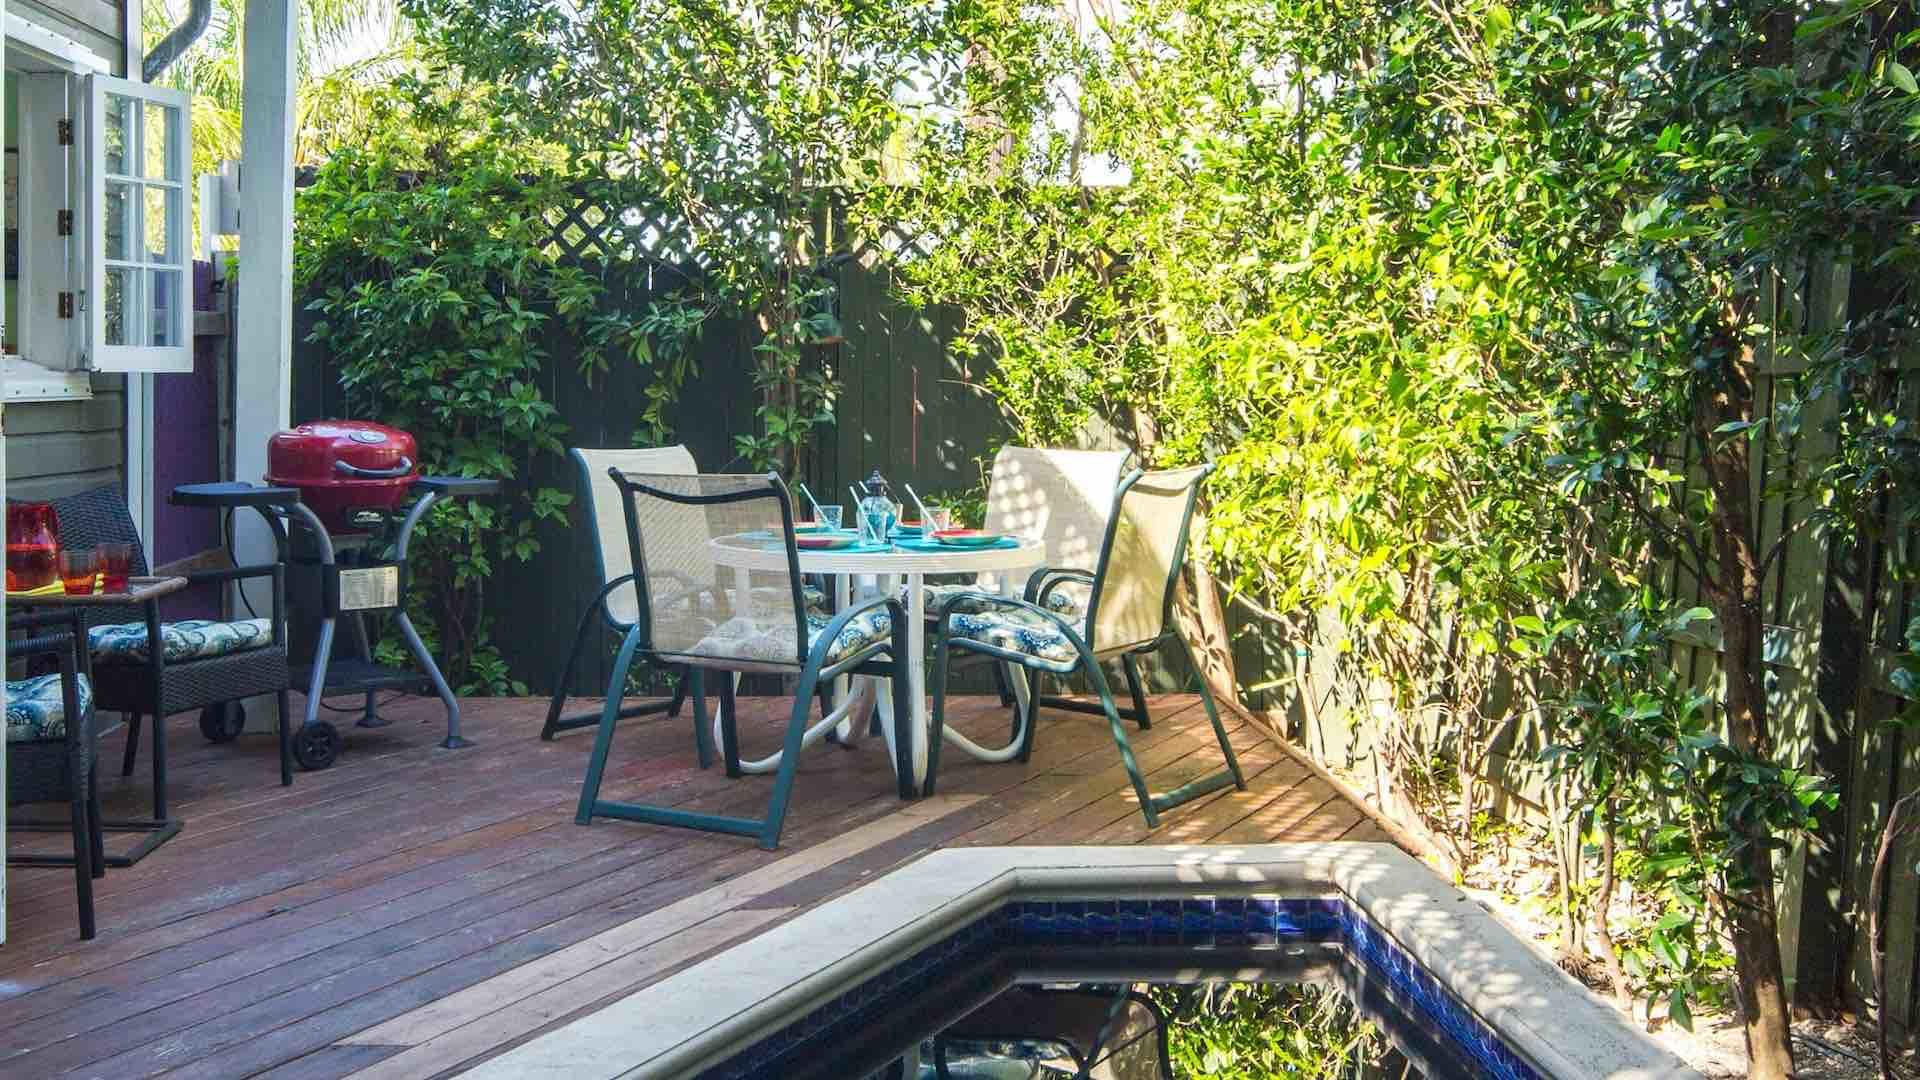 Enjoy a poolside BBQ using the electric grill and outdoor dining set...